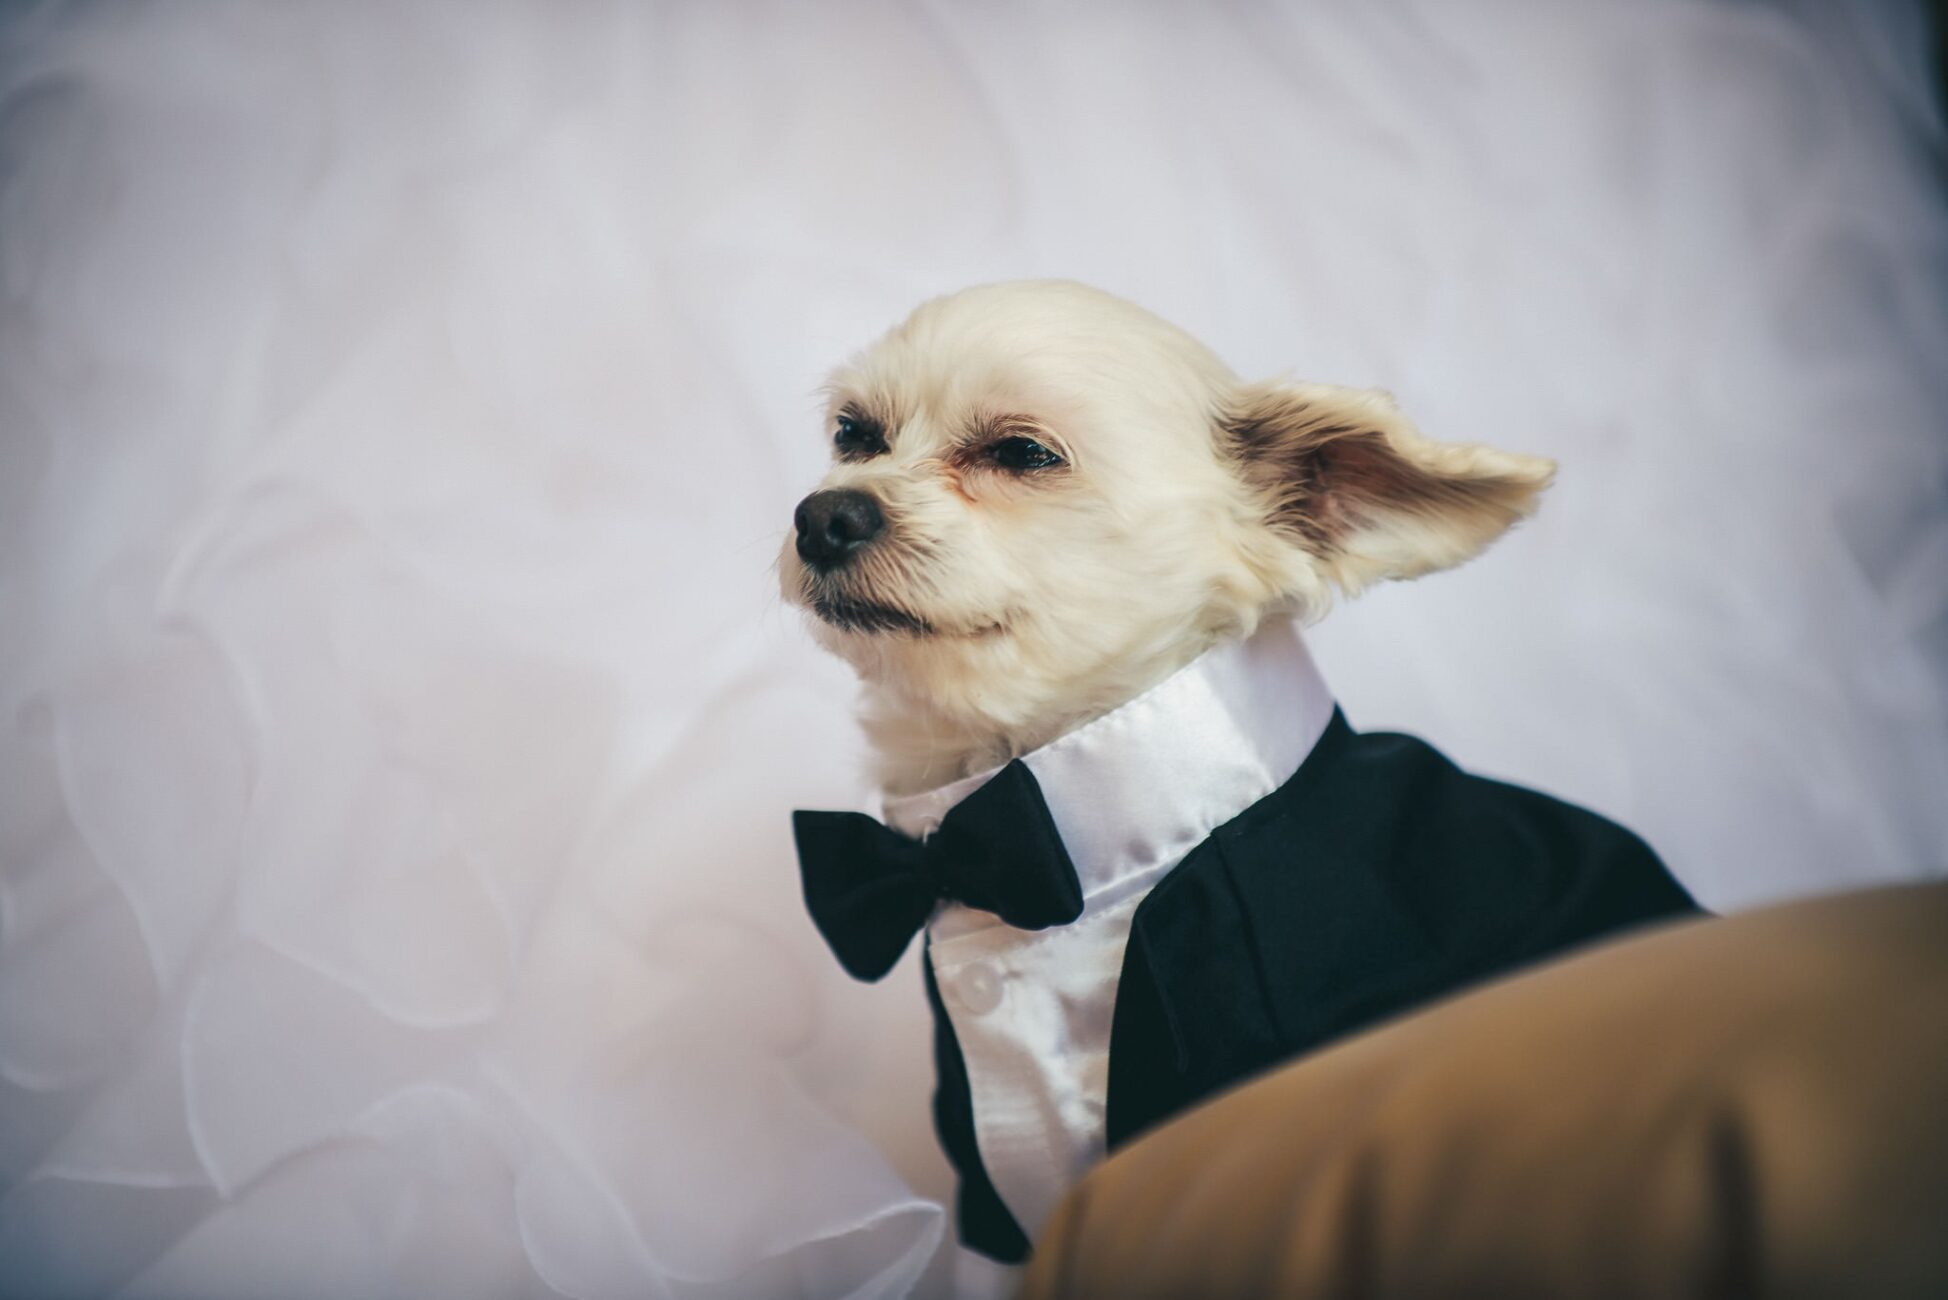 Furry Friends that make celebrations extra special